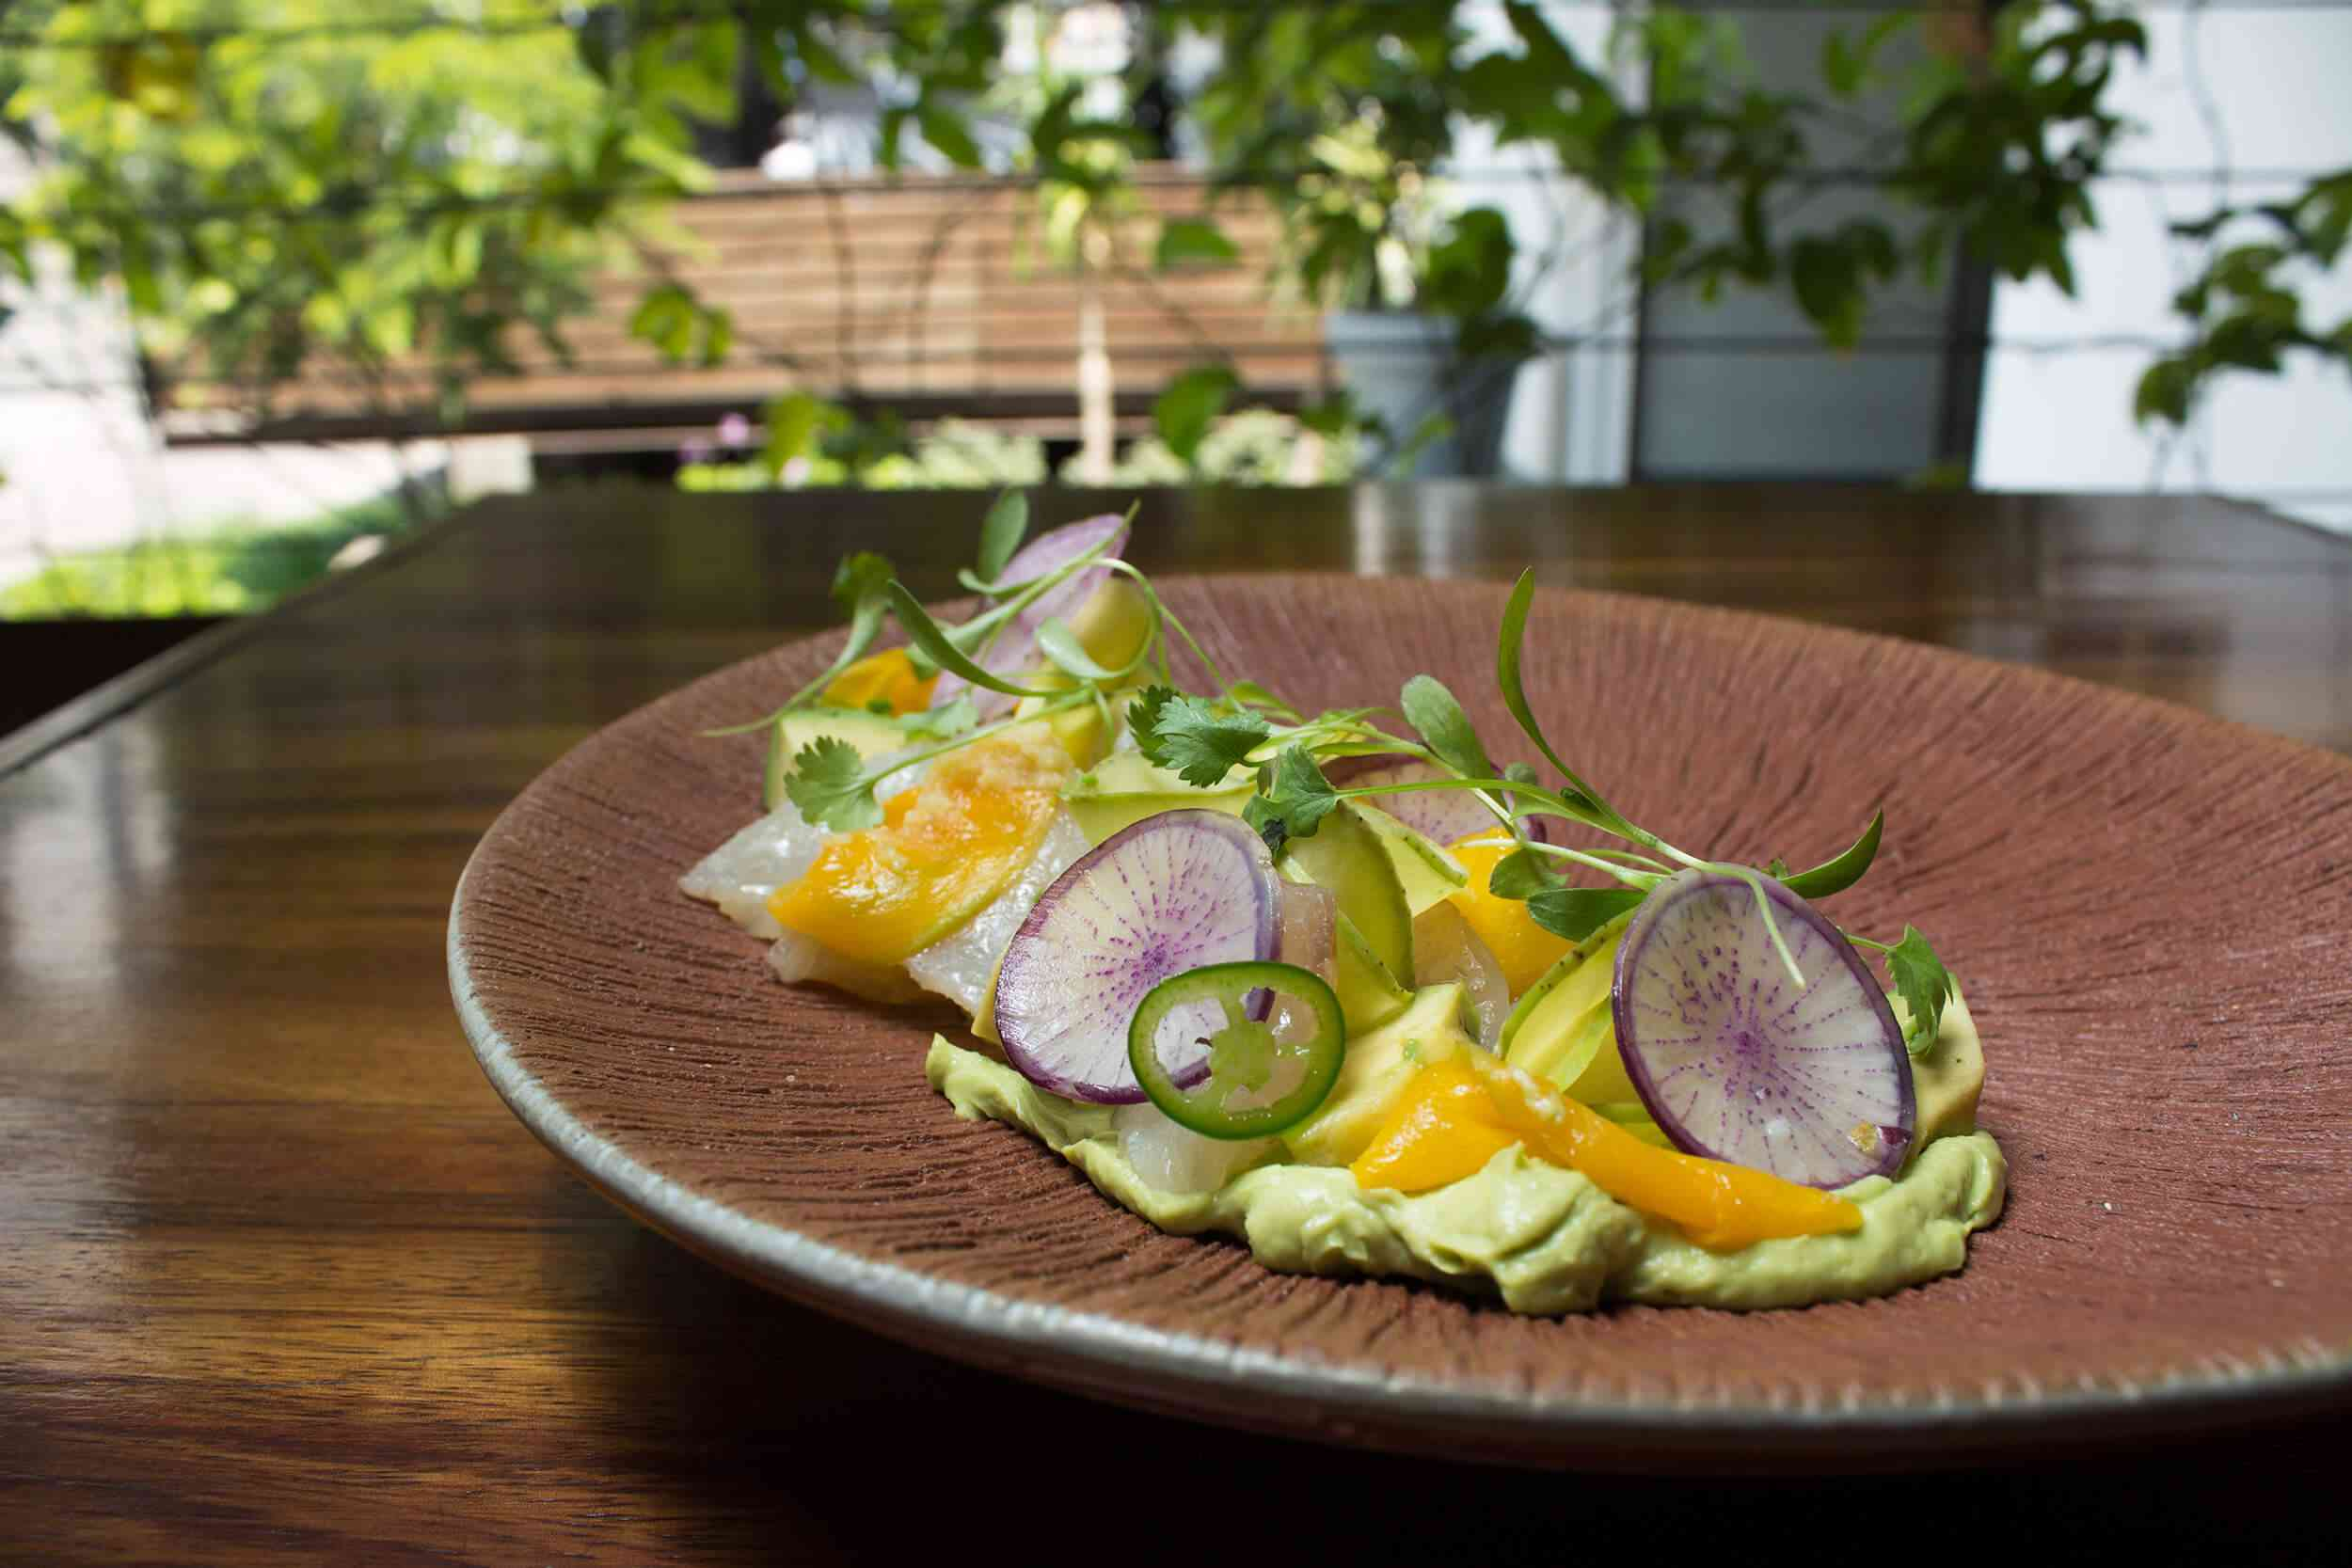 sprouts and sliced vegetables on a brown plate at Allium Guadalajara